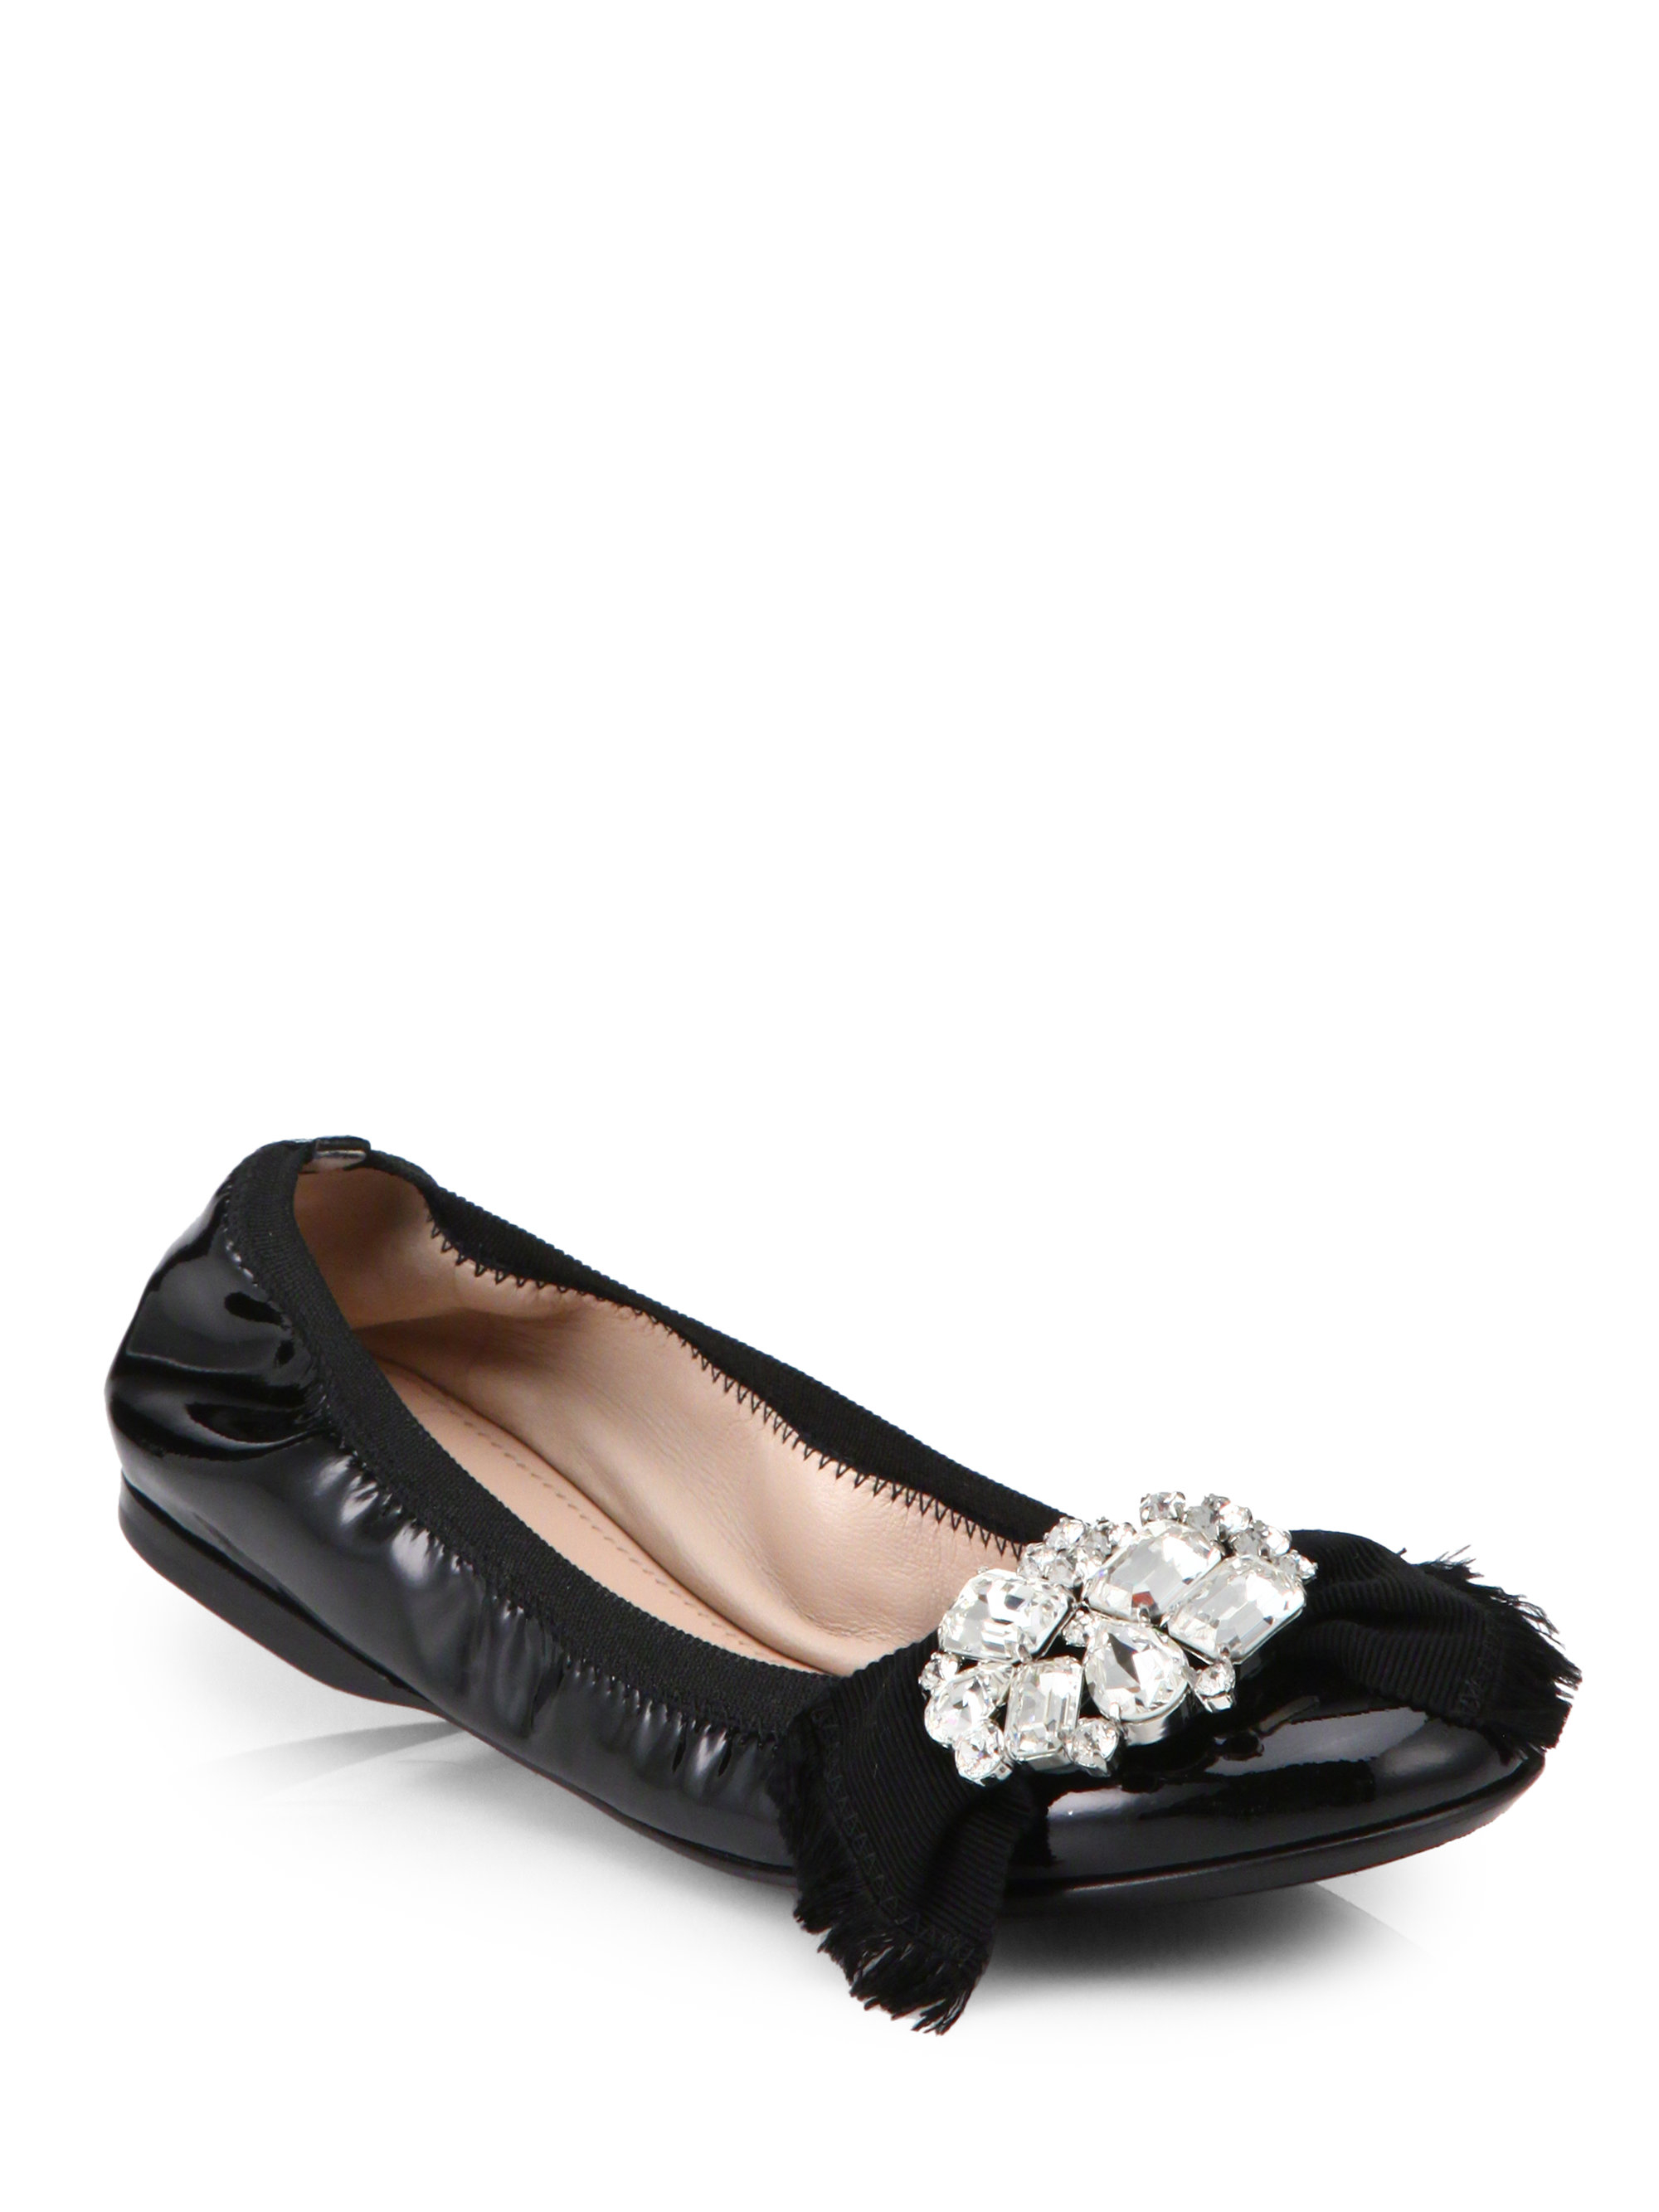 Lyst Miu Miu Crystal Embellished Leather Ballet Flats In